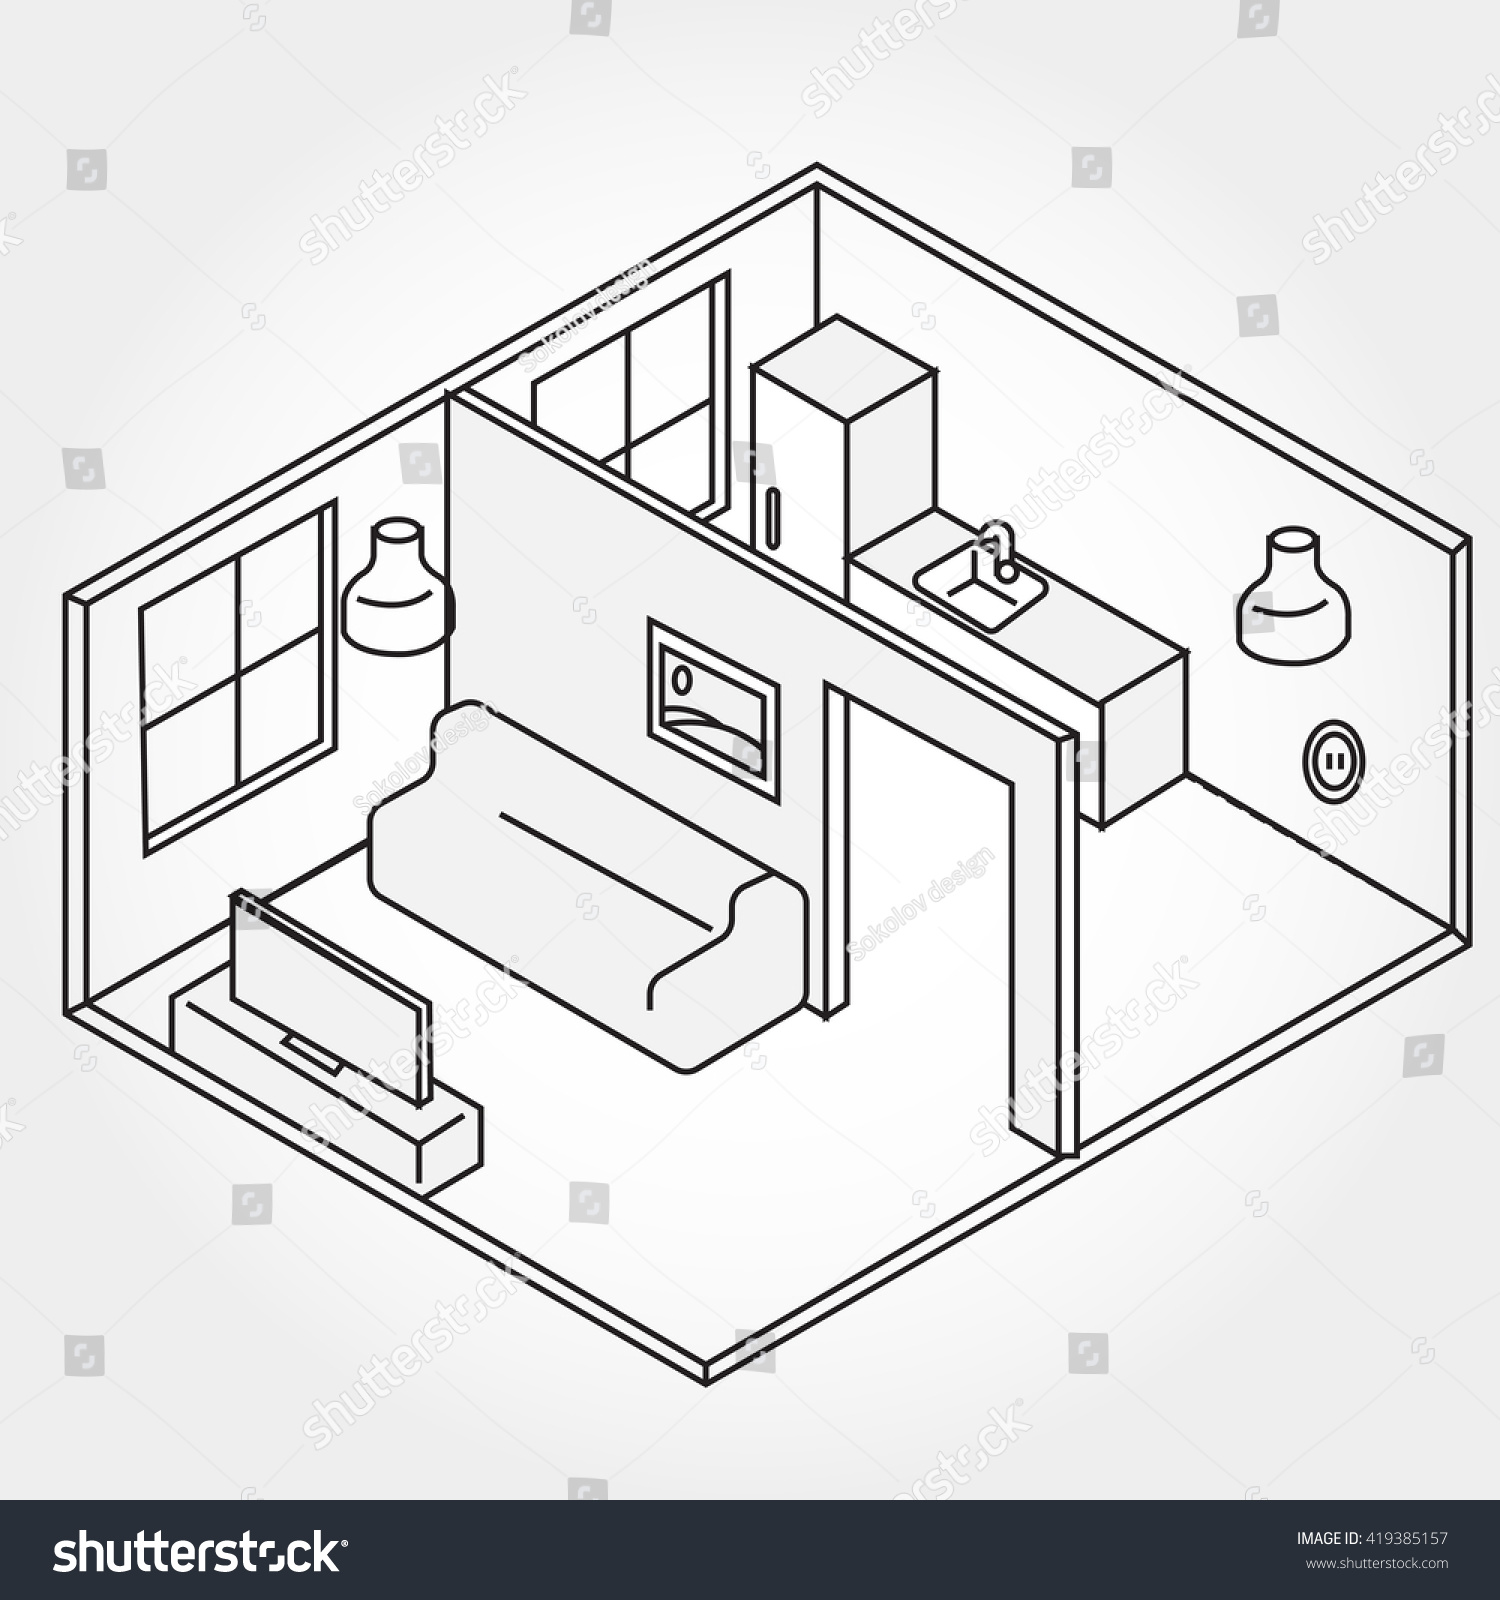 vector isometric living room icon illustration stock